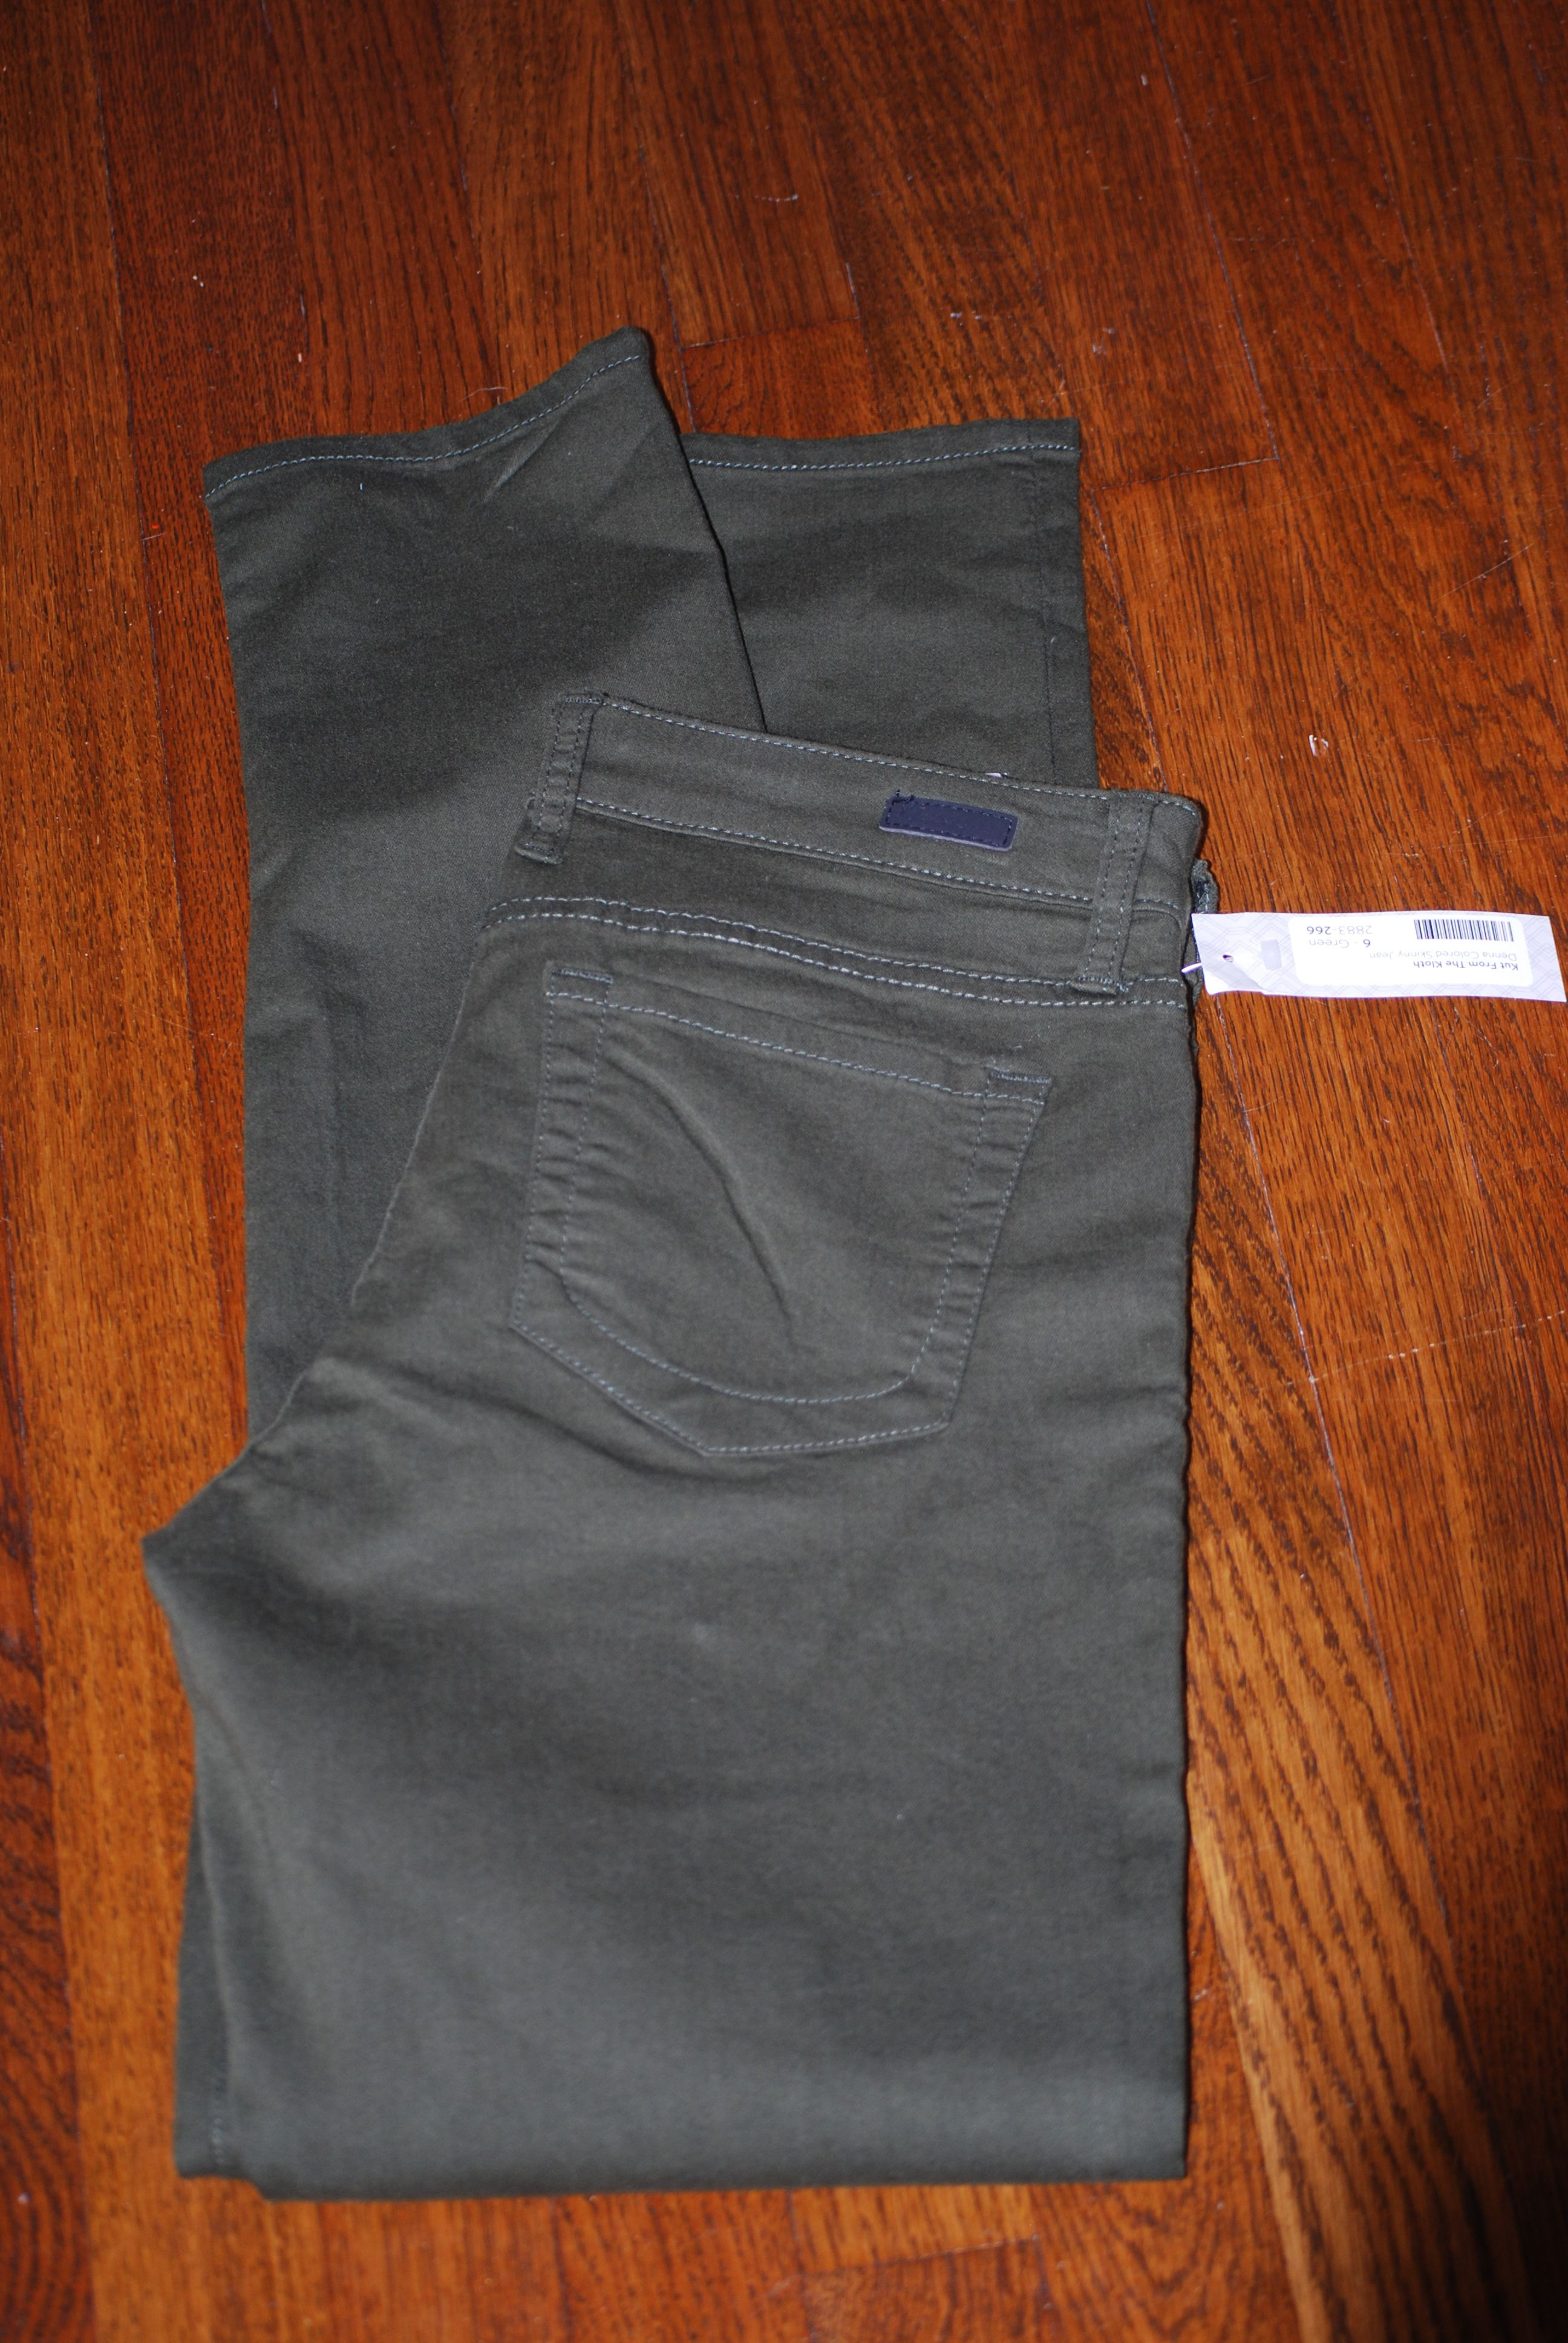 I have a pair of black Kut from the Kloth jeans that I like a lot. I'm looking for gray skinny jeans.